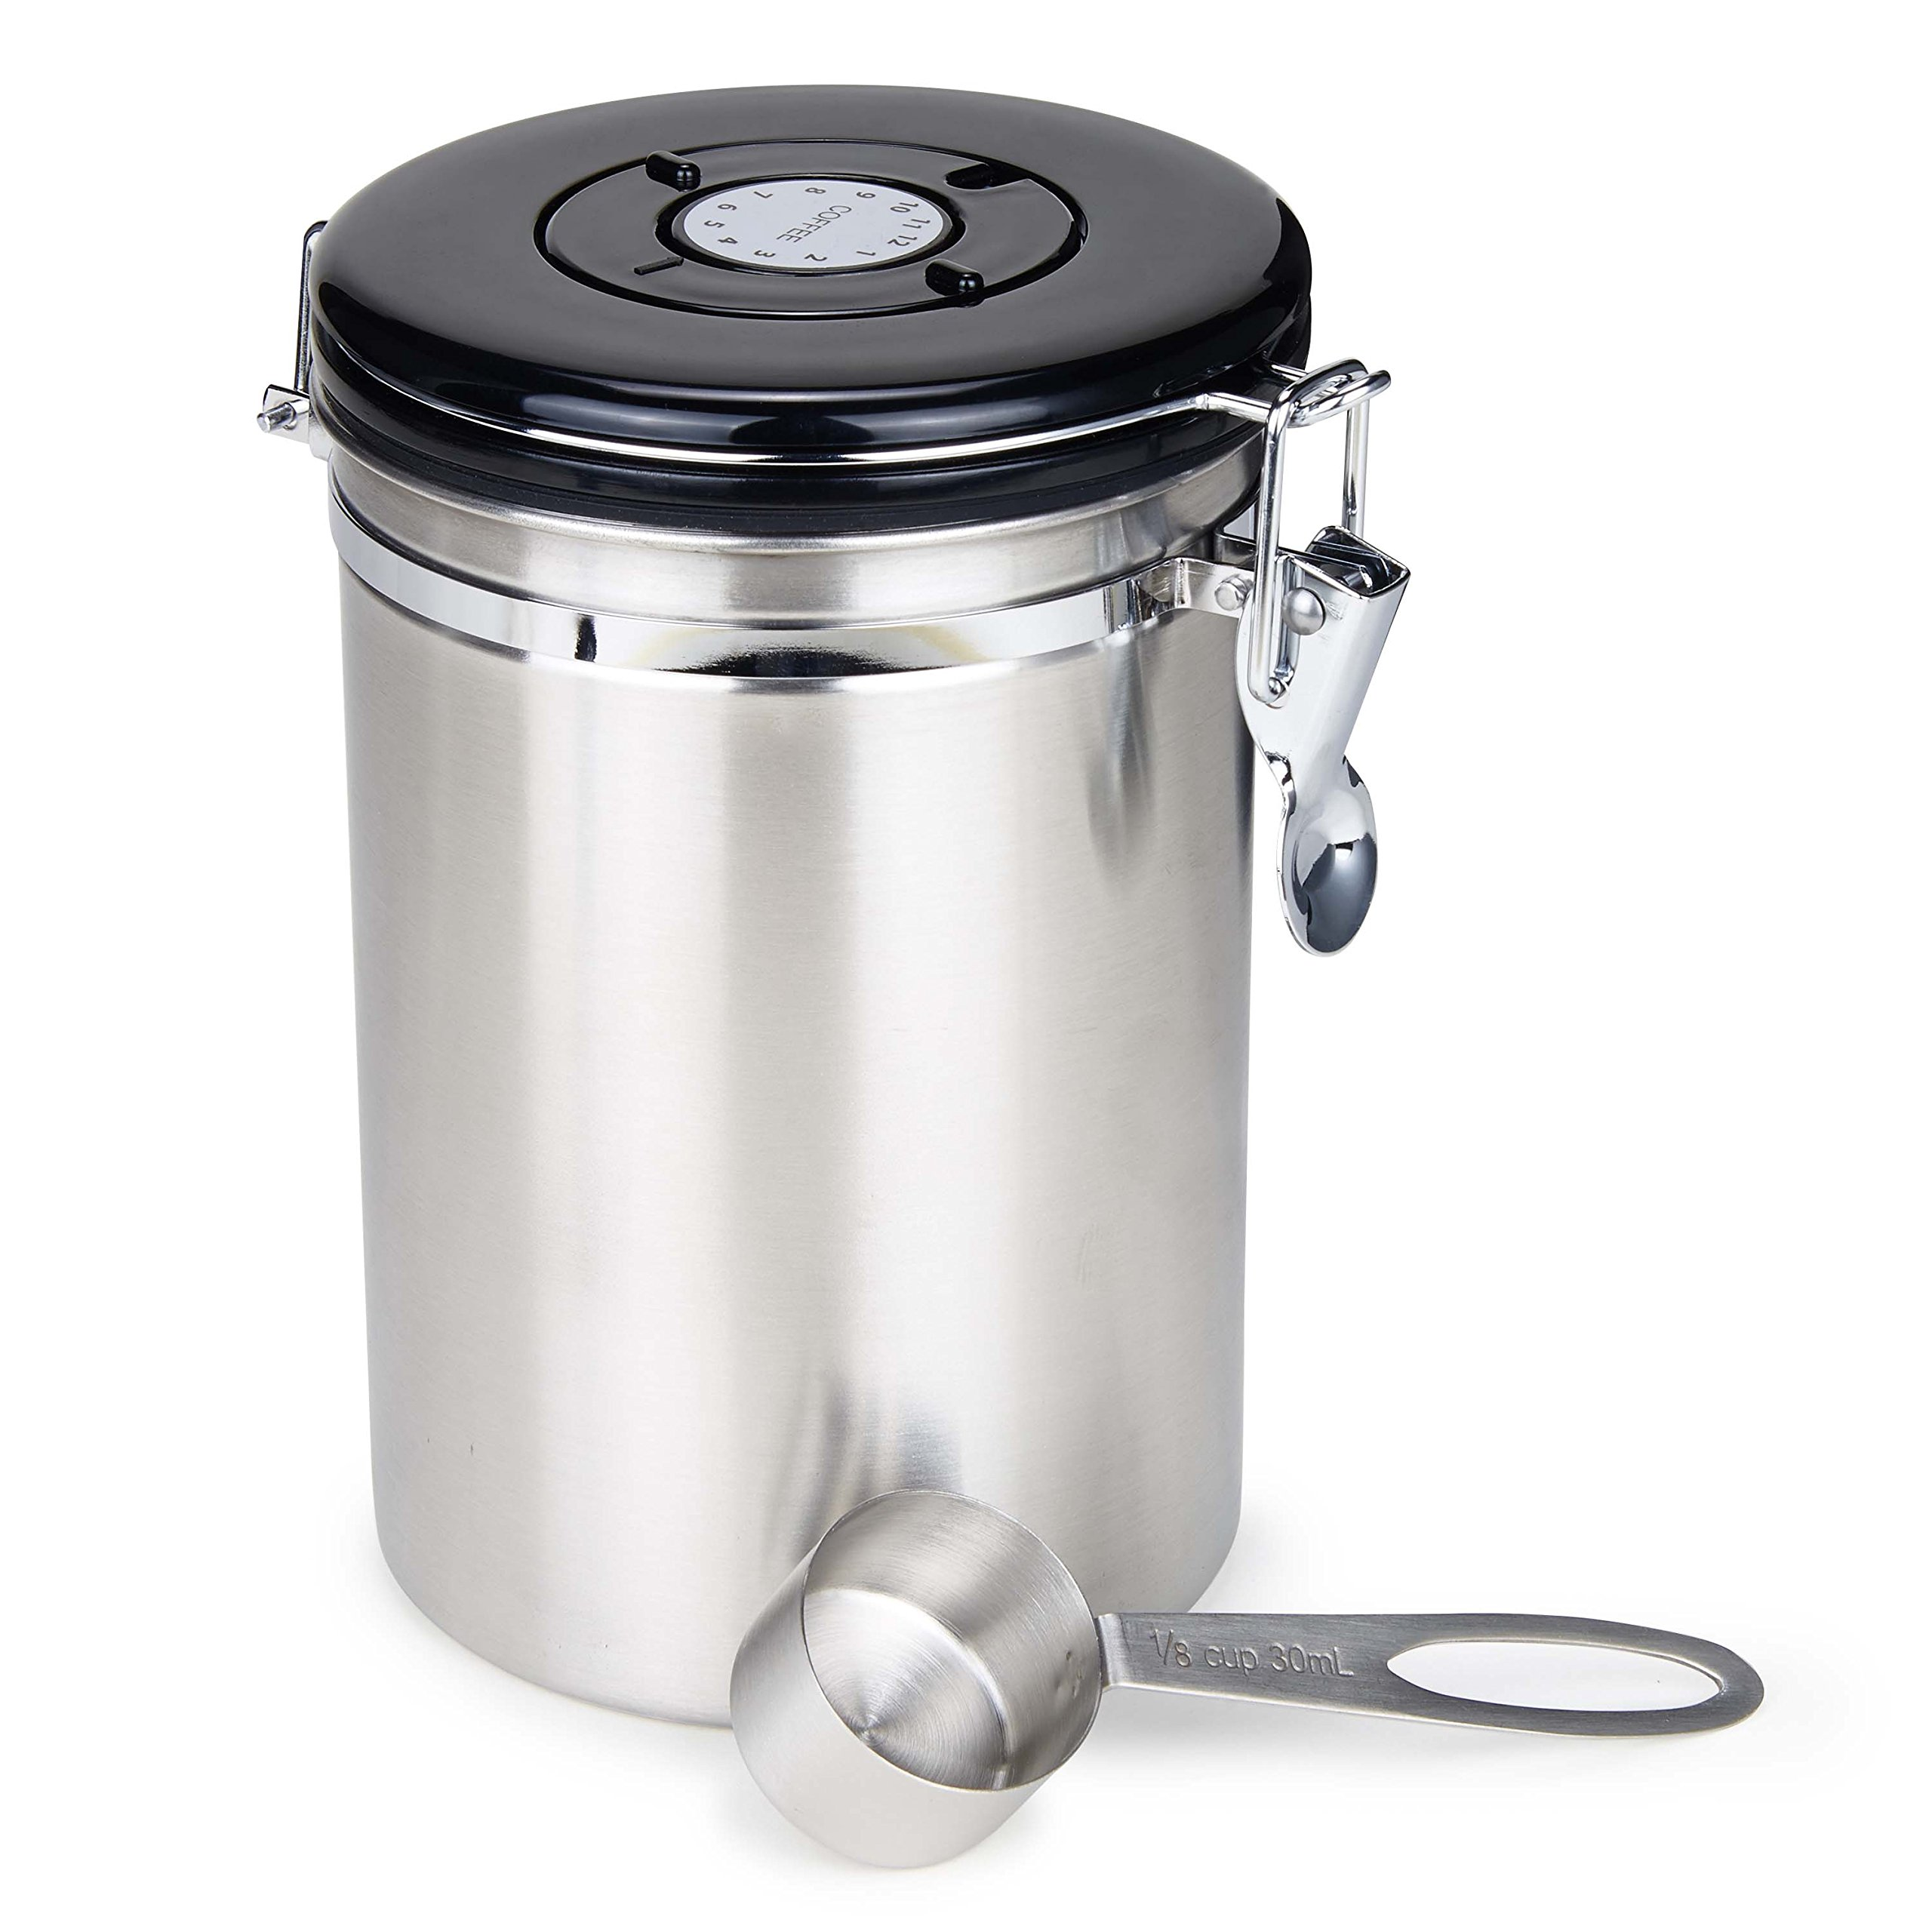 Moldiy Airtight Coffee Container, Stainless Steel Coffee Canister 21 oz with Scoop and CO2 Valve, Brushed Nickle Finshed